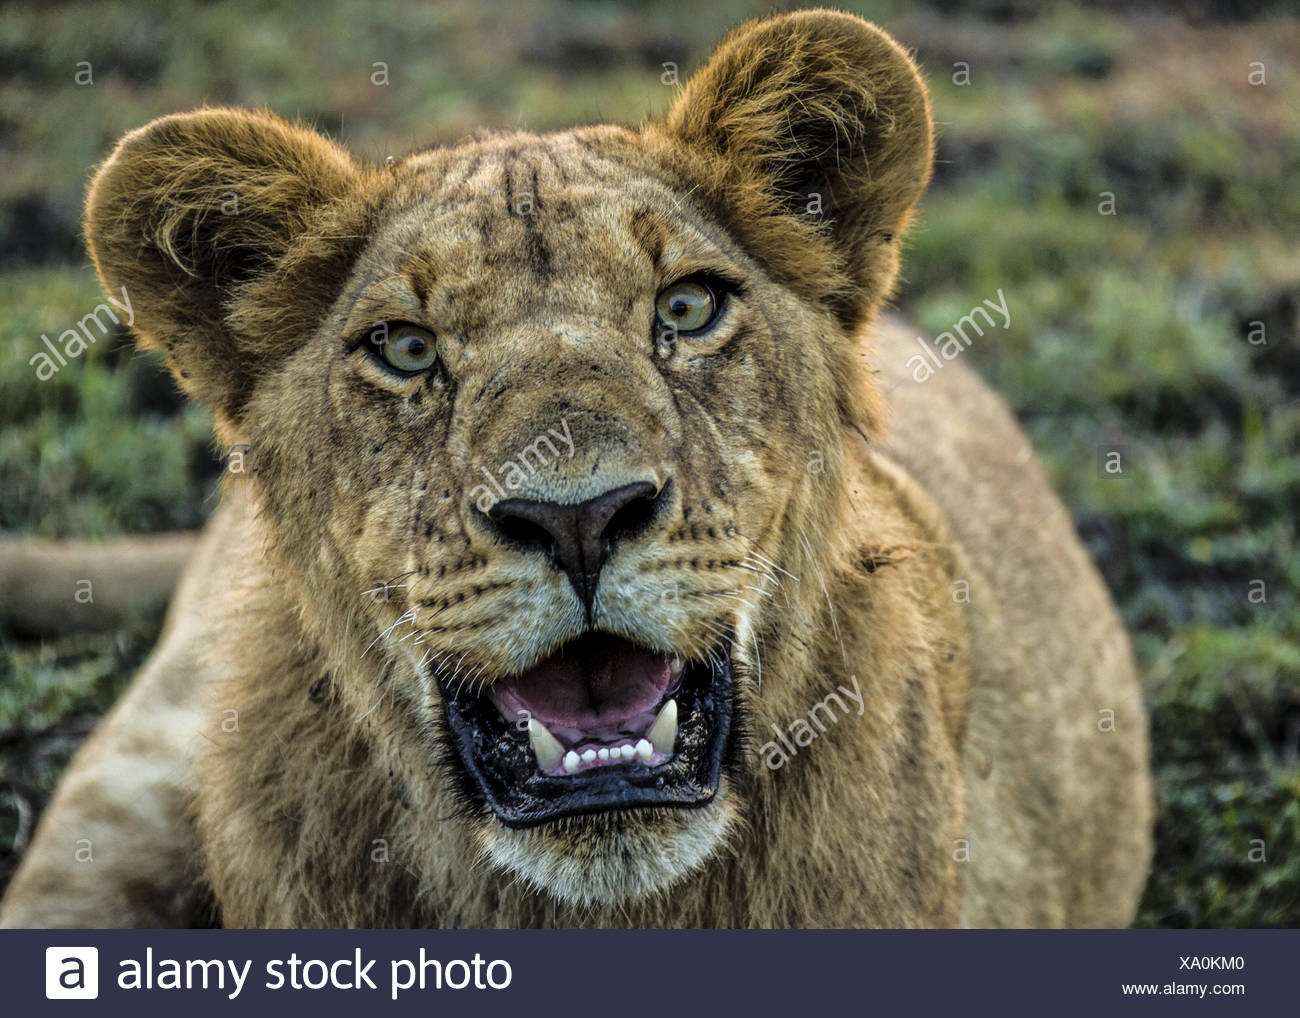 A young male lion, Panthera leo, panting in the heat. - Stock Image